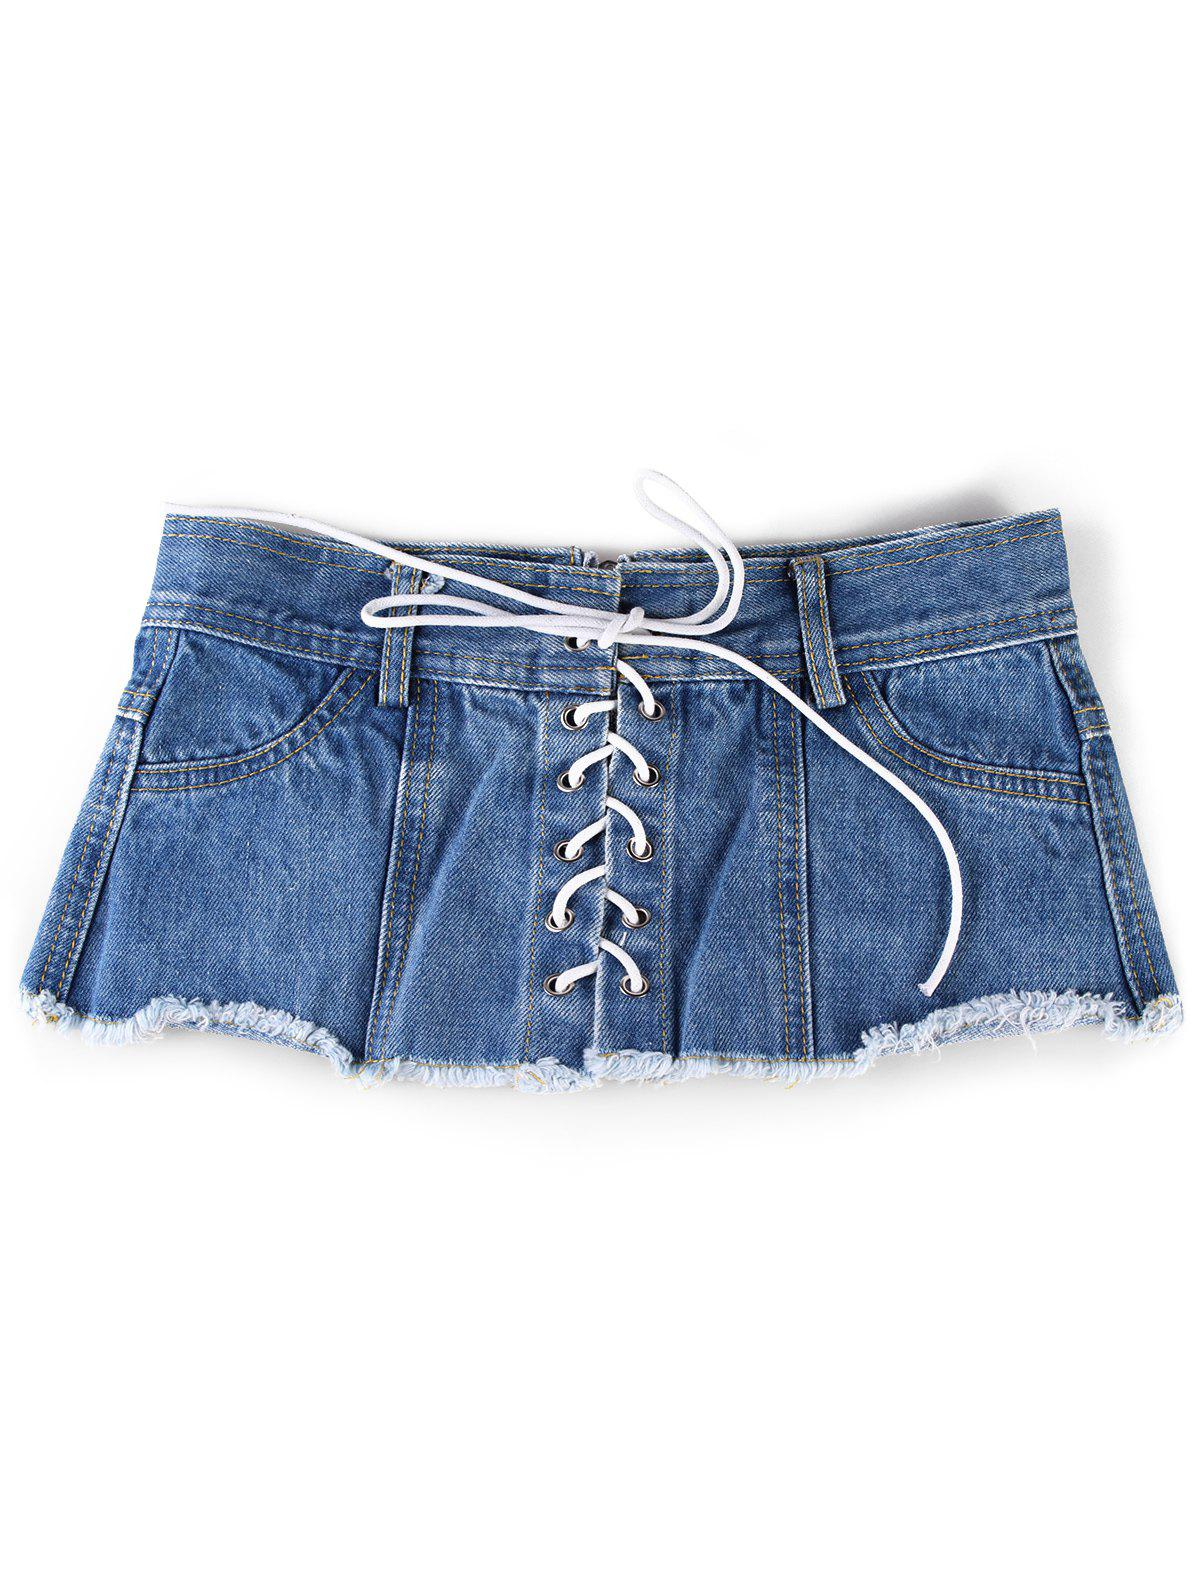 Denim Shorts Dress Blouse Waist Belt - BLUE